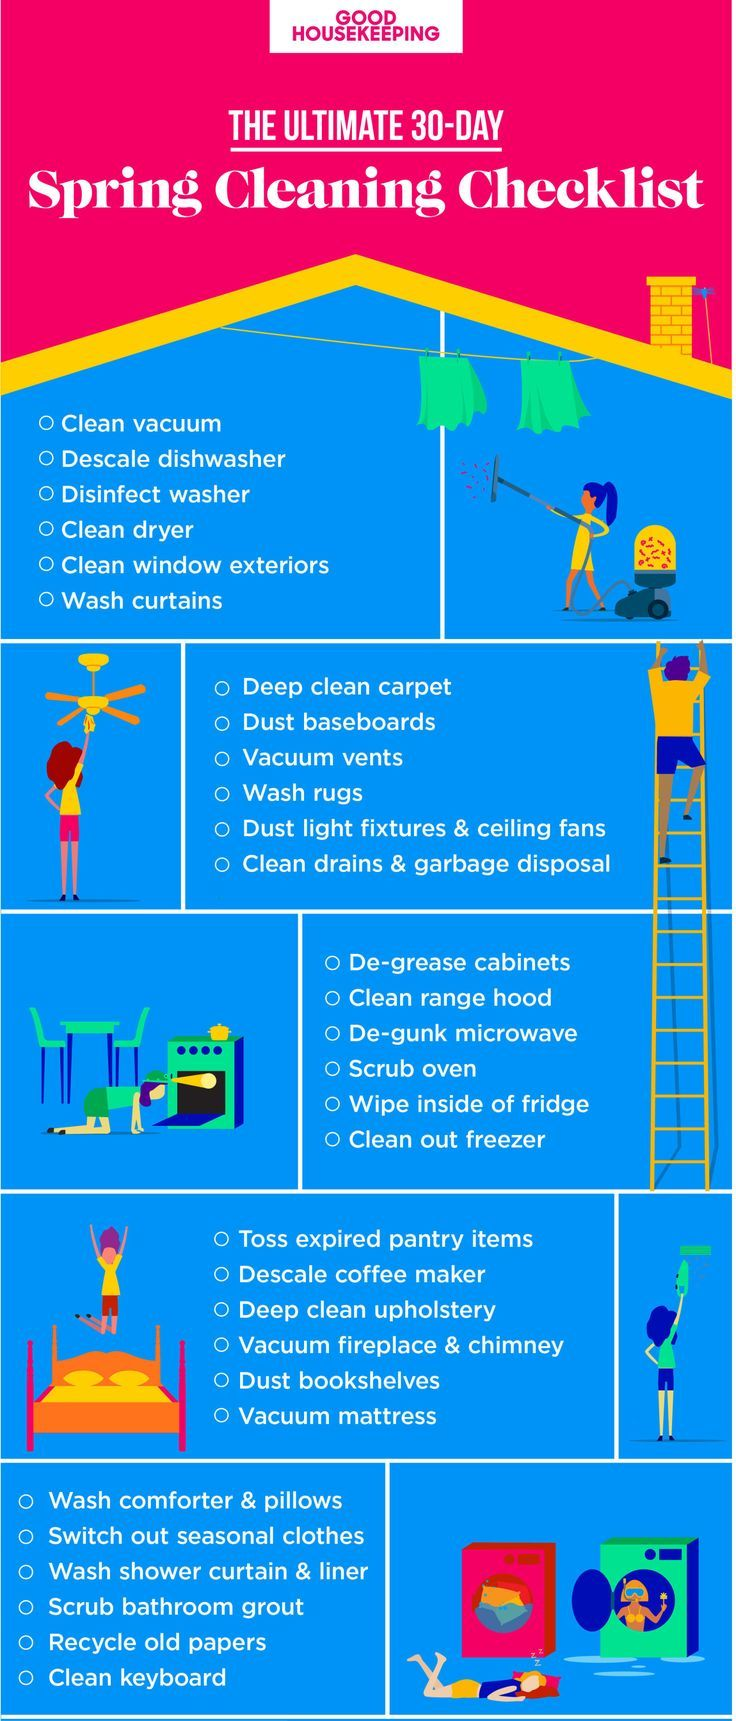 Weve broken spring cleaning down into 30 days so you can tackle one chore at a time then rel